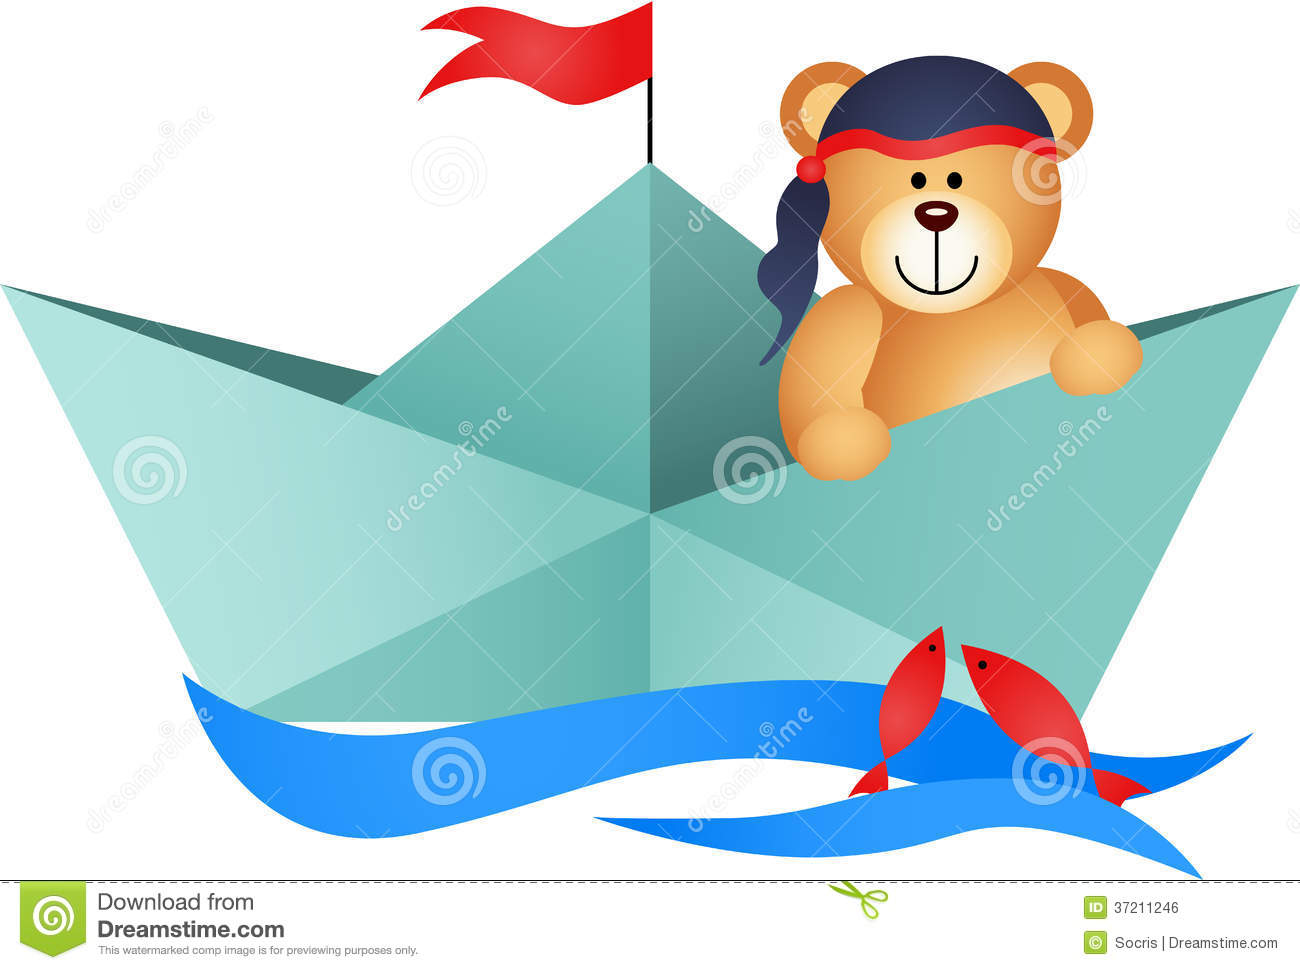 teddy bear pirate in a boat royalty free stock image sailboat clipart black and white free sailboat clip art black & white